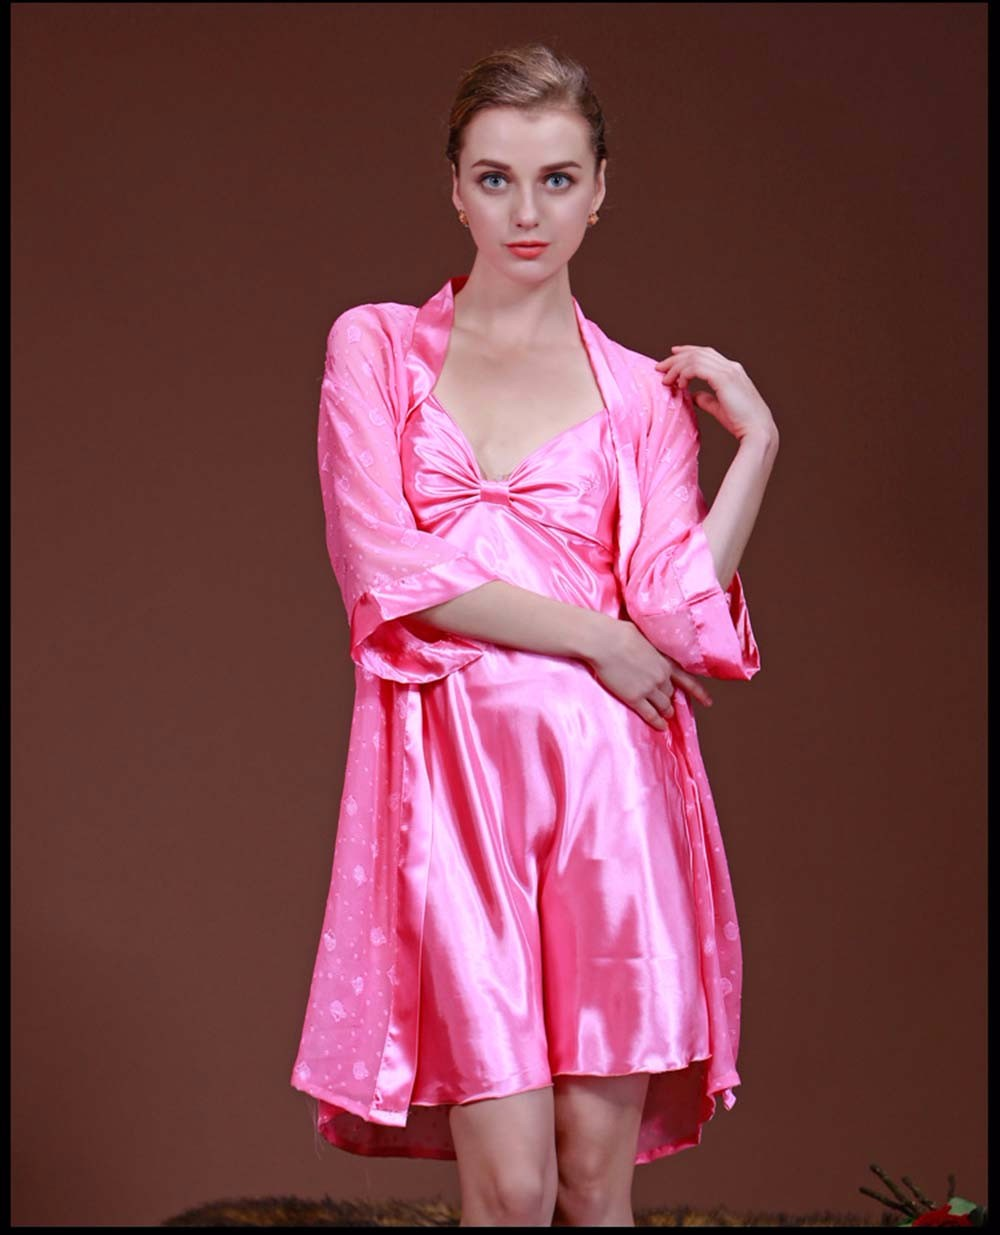 9307b70910 2016 Hot Sexy Women Black Champagne Silk Satin Robe Wedding Bride Bridesmaid  Lingerie Sleepwear Nightgown